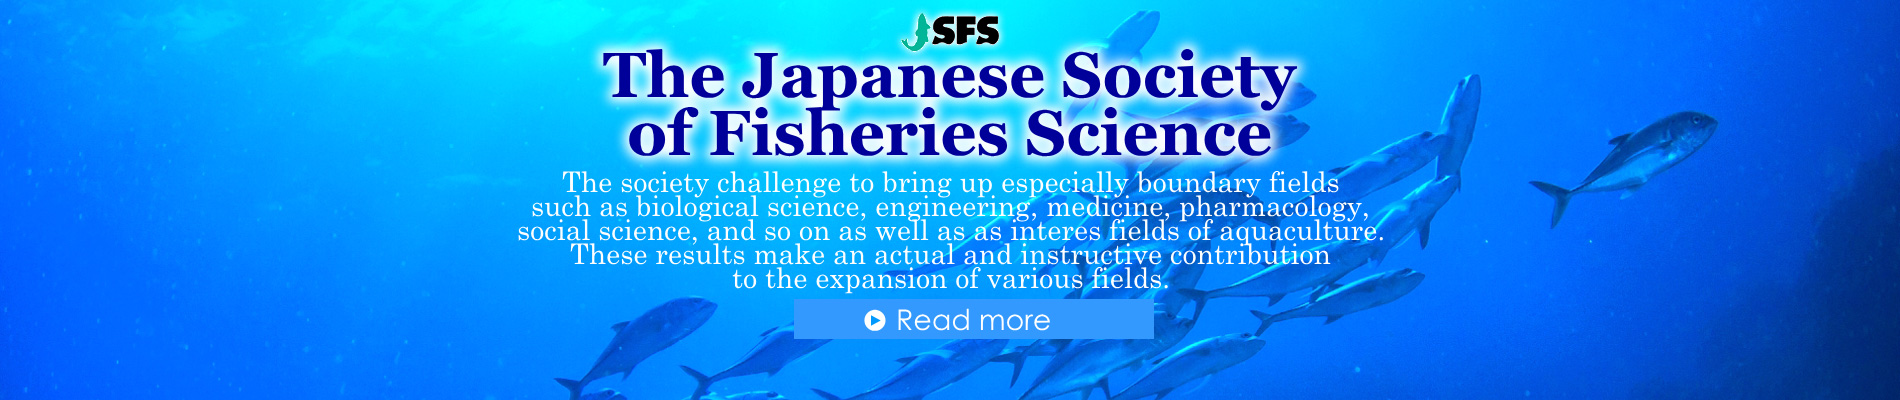 The Japanese Society of Fisheries Science